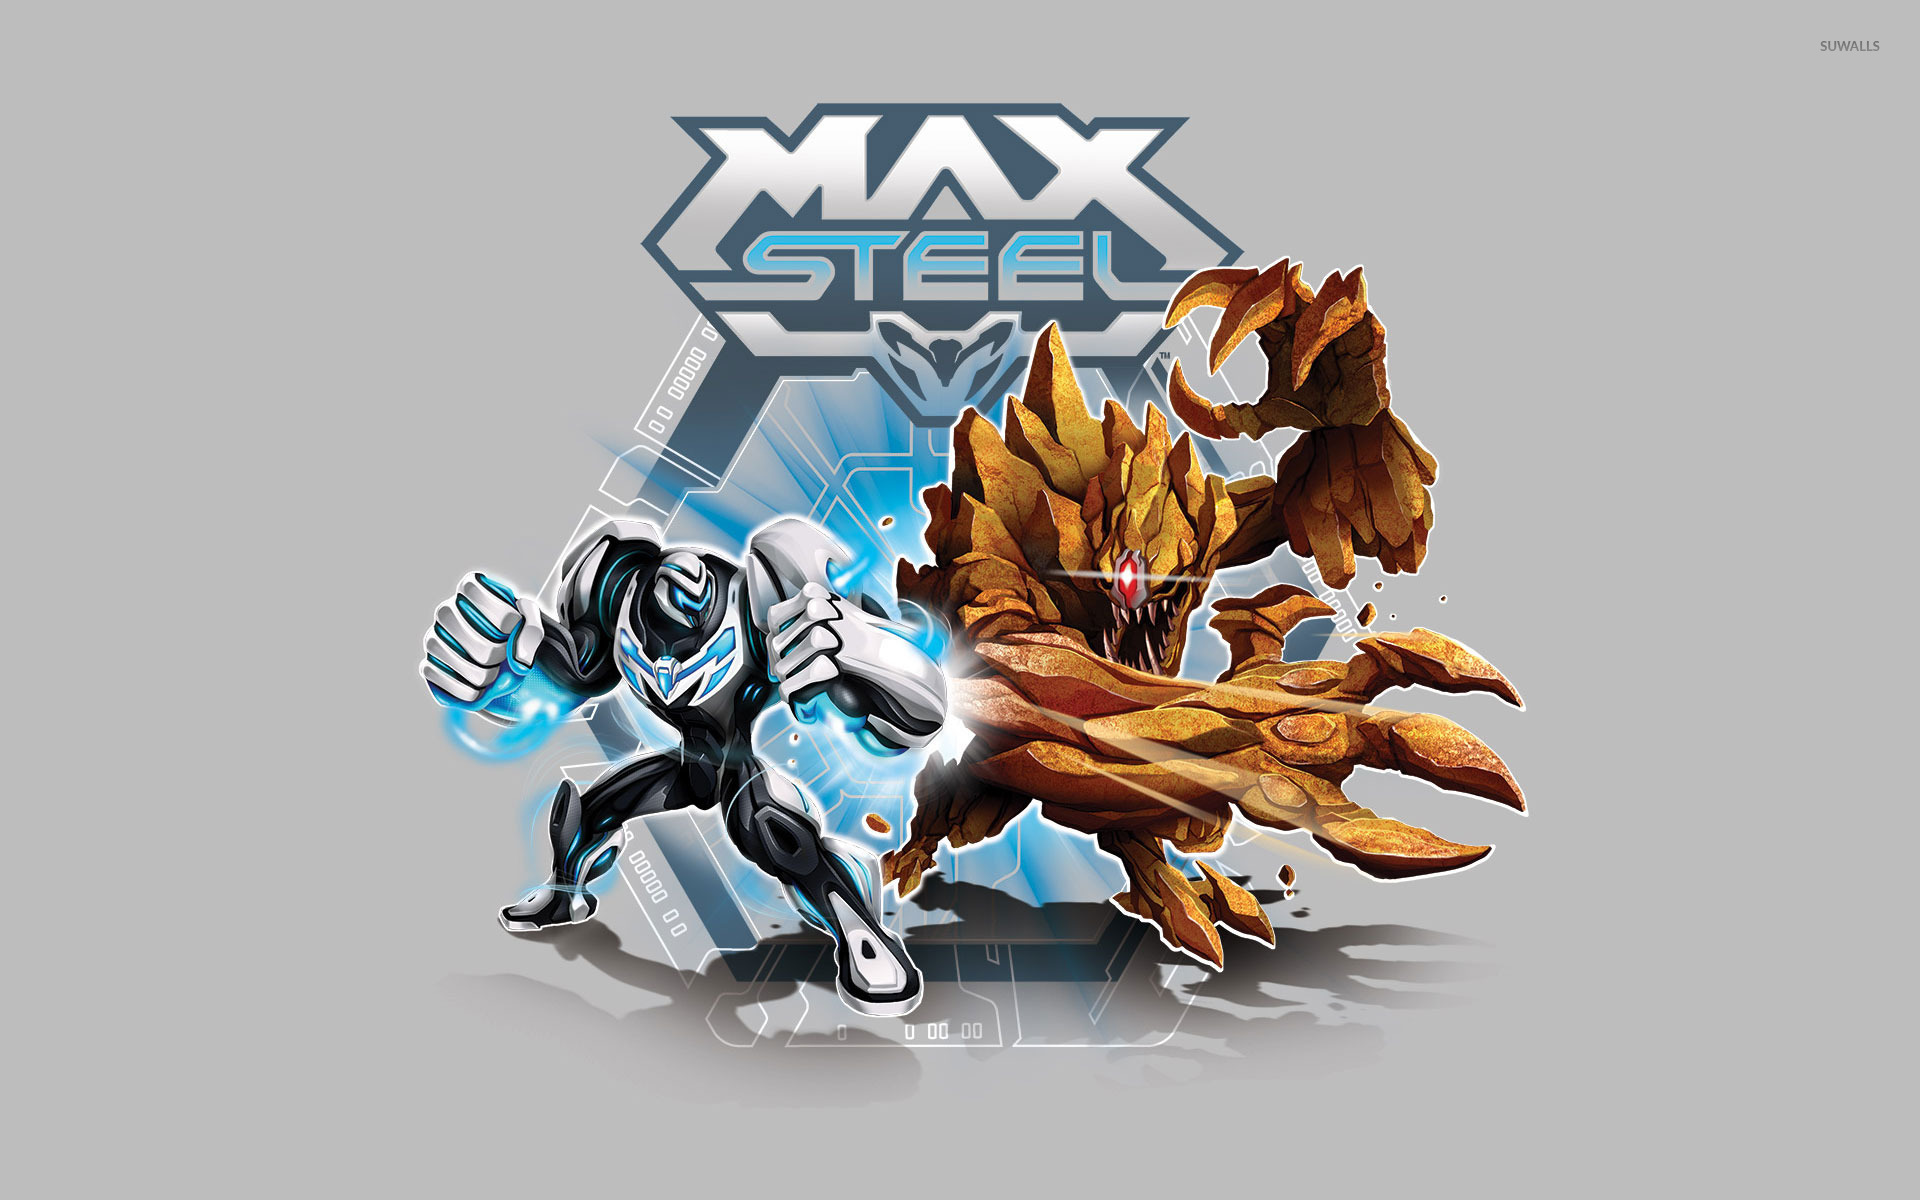 max steel 3 wallpaper game wallpapers 20603